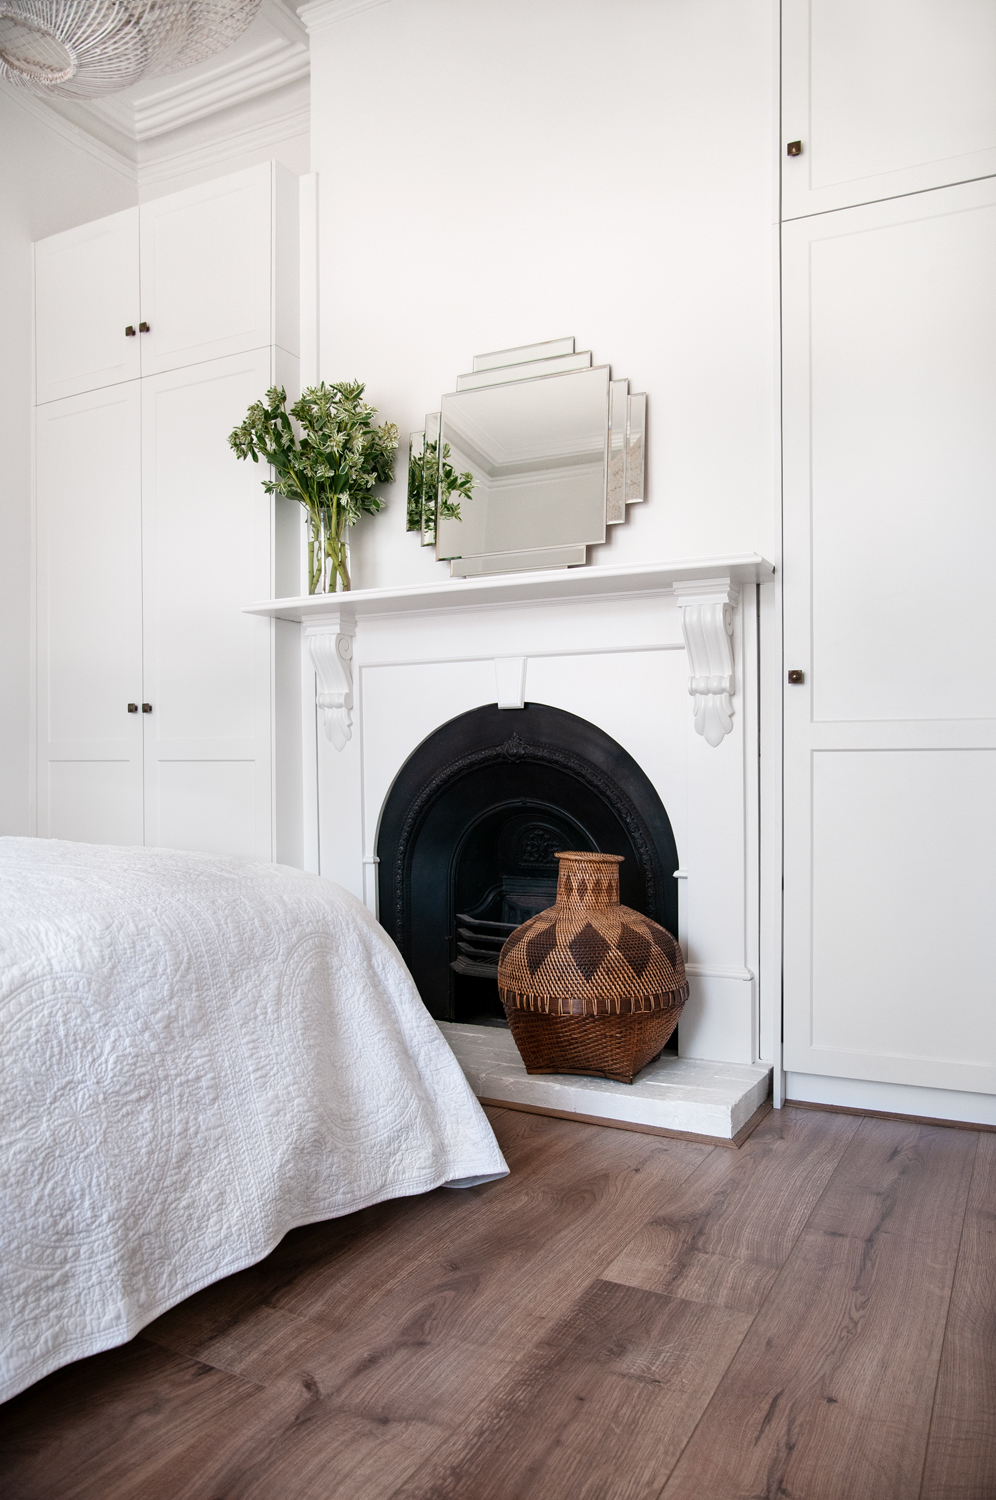 Bedroom with white fireplace with a mirror on the mantlepiece and a brown pot on the floor